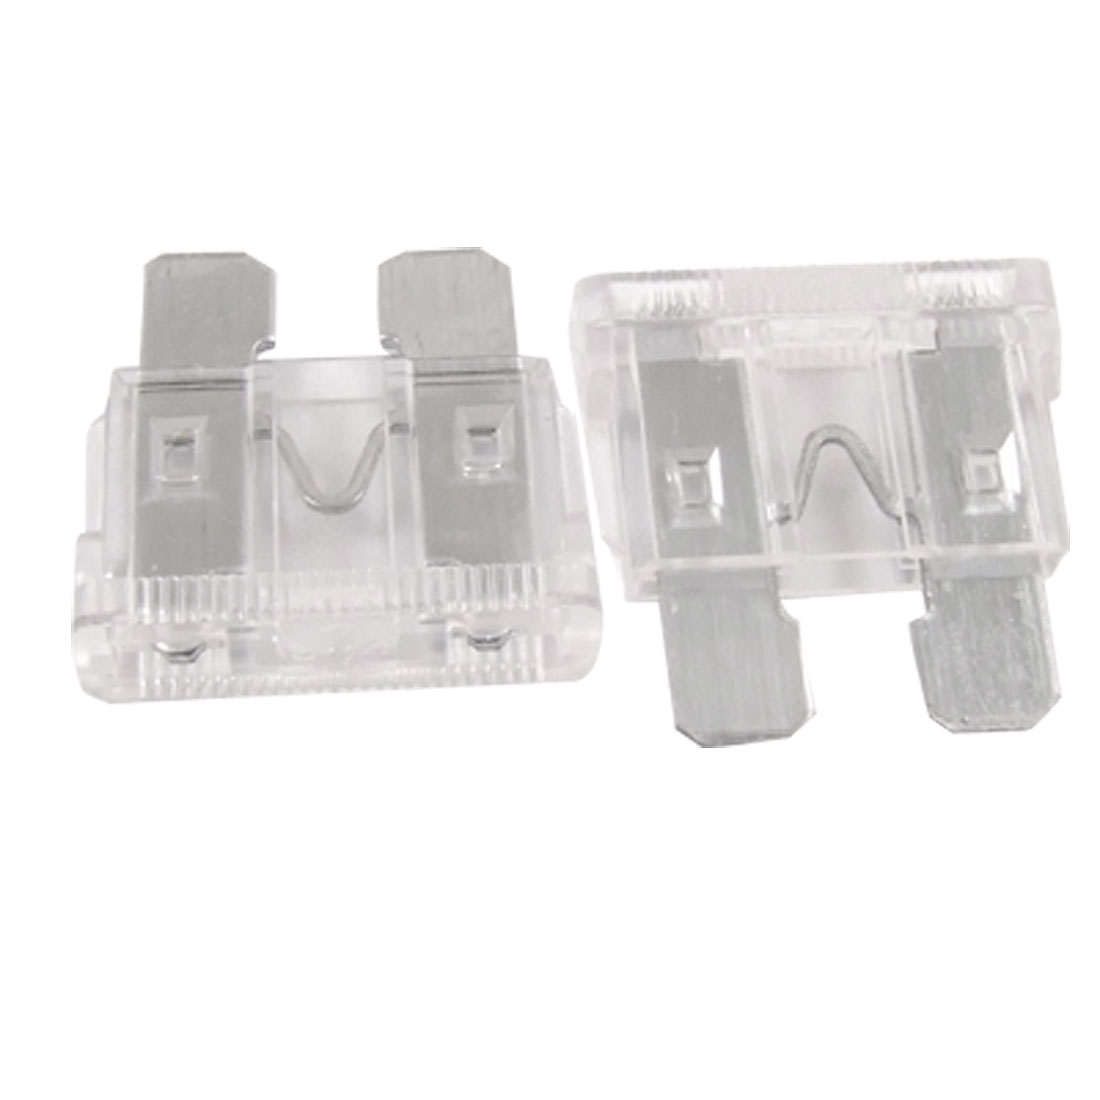 10 x 25A ATC Fuse Auto Car/Boat/Truck Plug-in Blade Fuses Clear